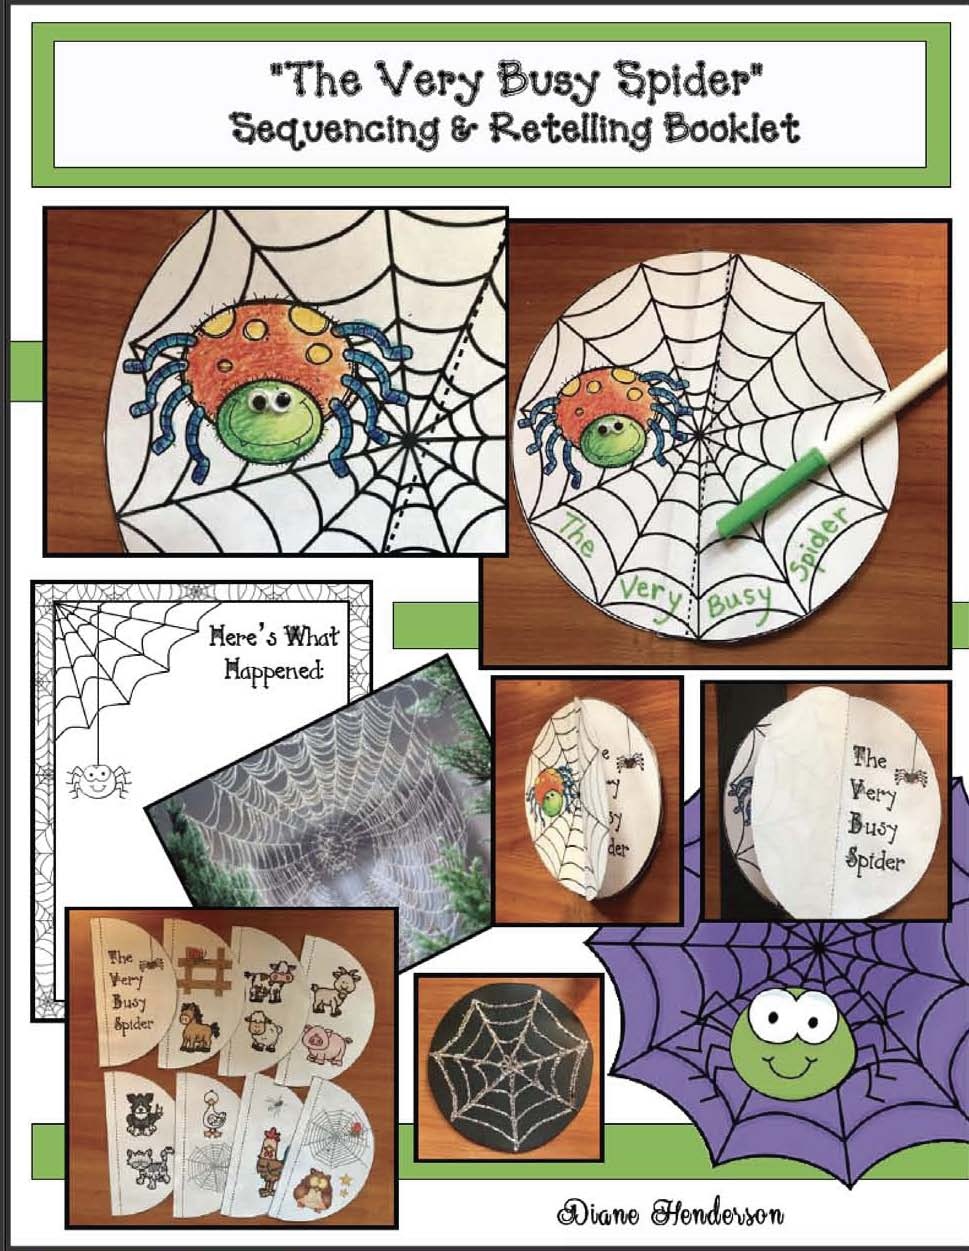 activities for the very busy spider, activities for the very busy spider, spider activities, spider crafts, eric carle's the very busy spider, eric carle activities, sequencing a story activities, retelling a story activities